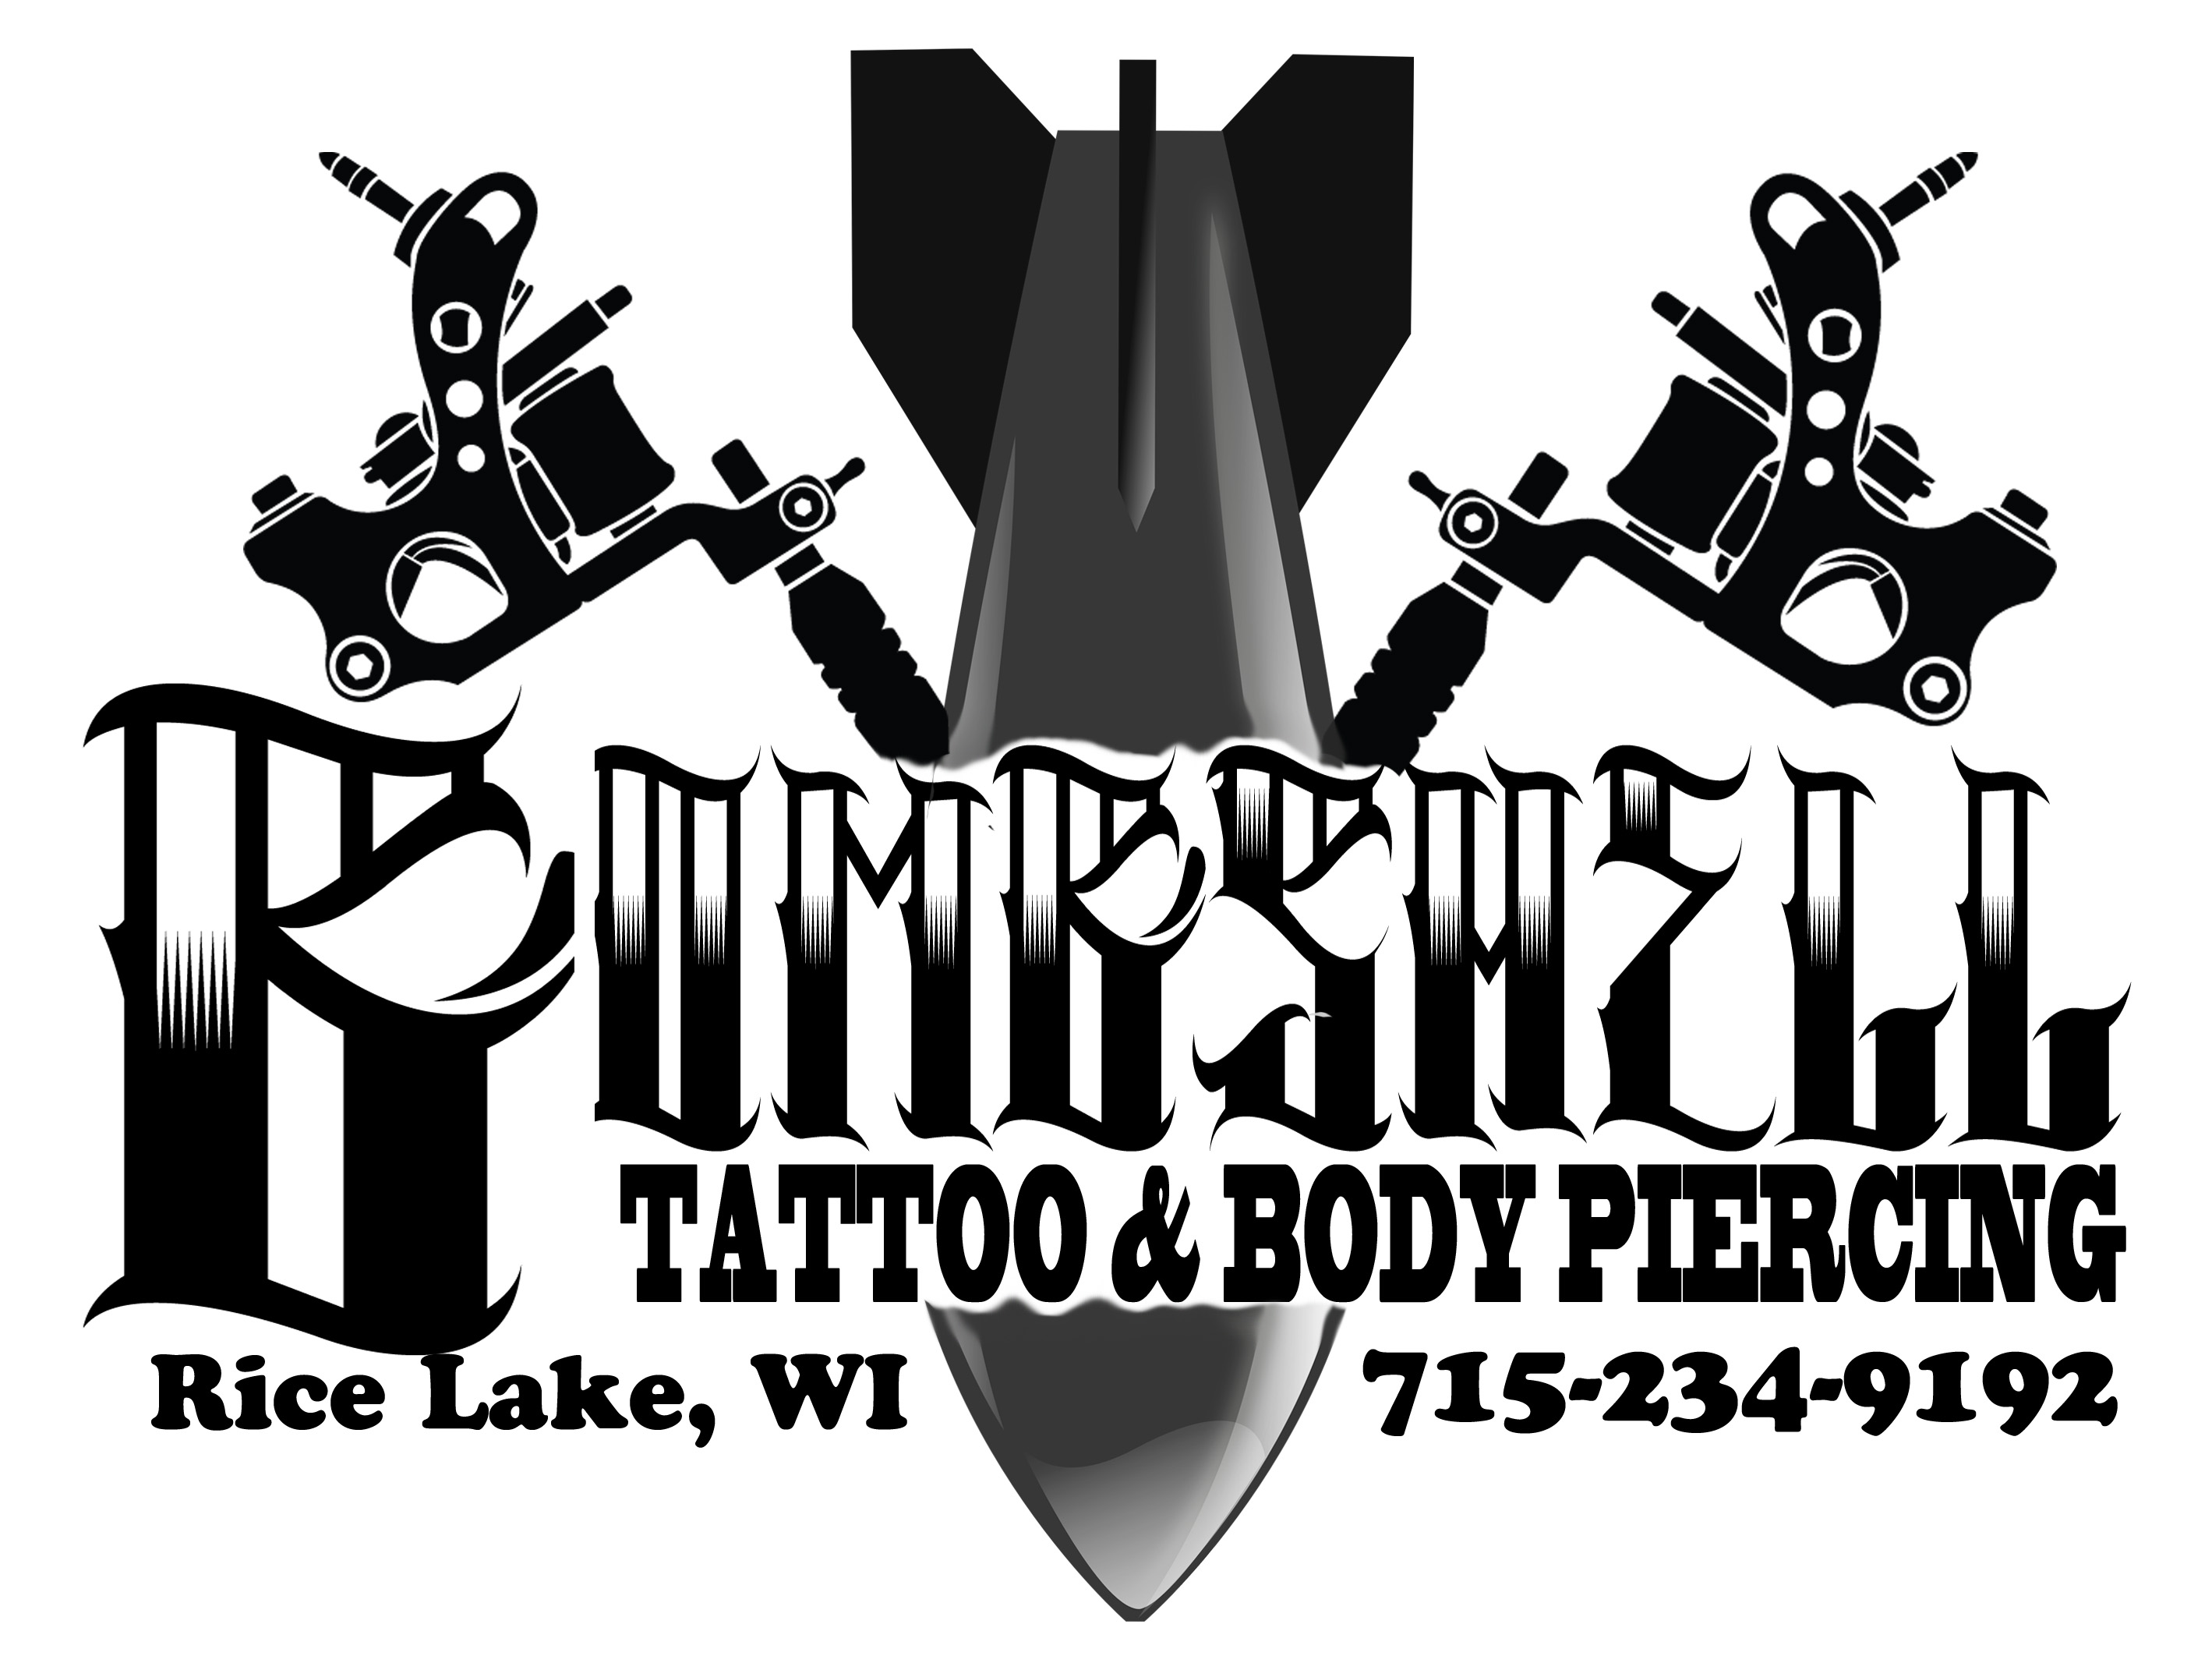 Bombshell tattoo body piercing tattoo shop reviews for Tattoo shops in eau claire